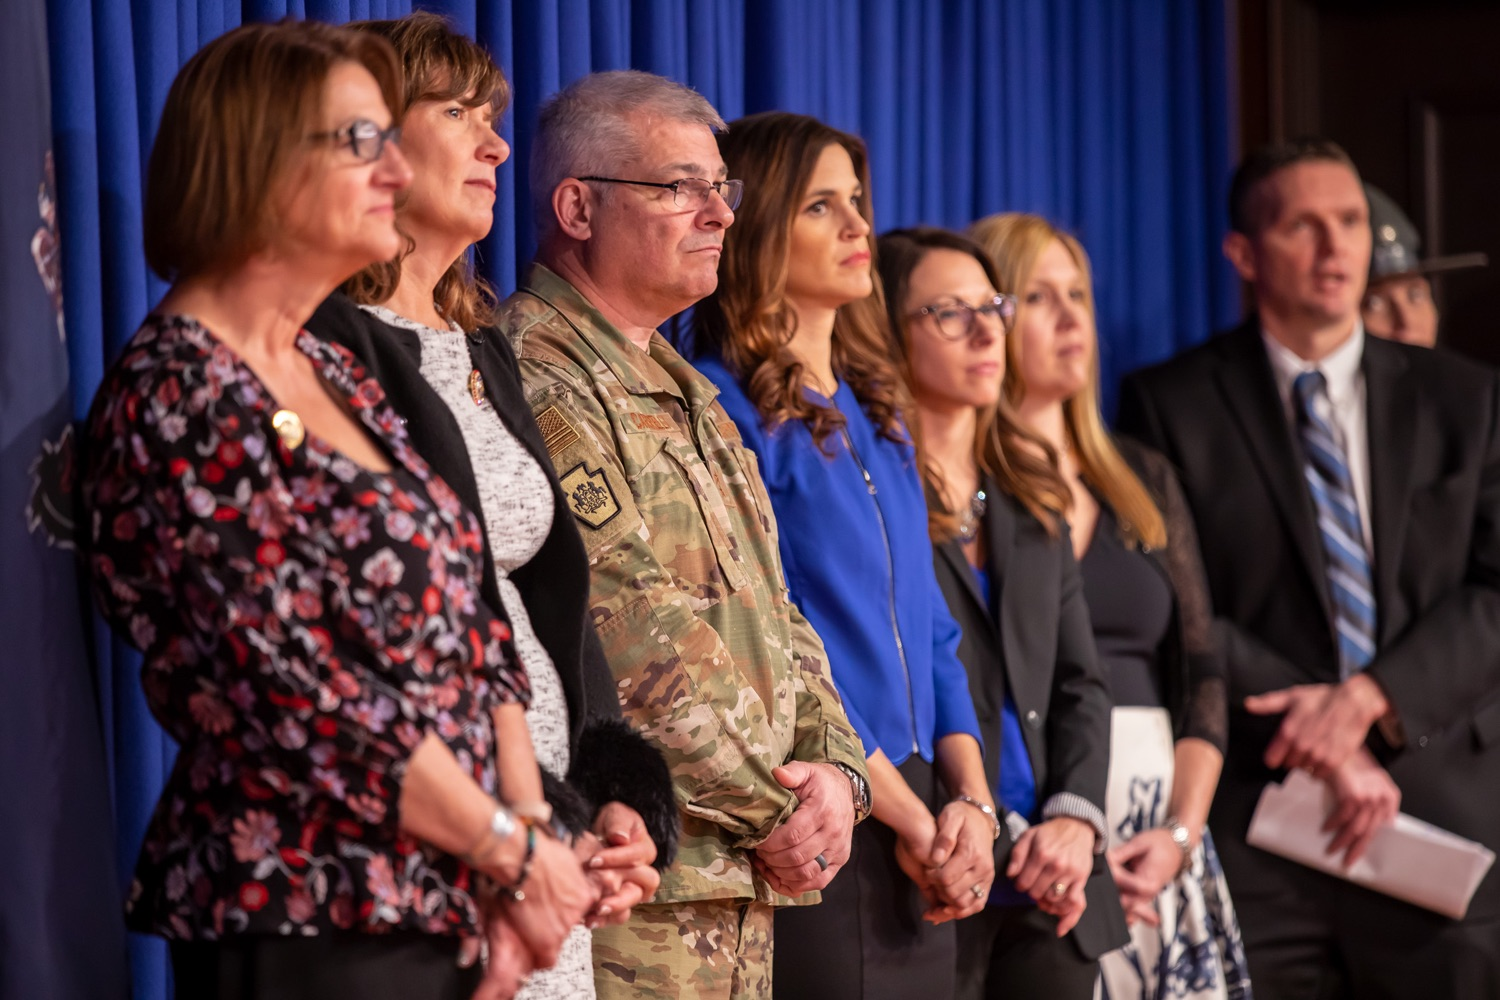 """<a href=""""https://filesource.wostreaming.net/commonwealthofpa/photo/17711_DHS_SuicidePrevention_AG_11.jpg"""" target=""""_blank"""">⇣Download Photo<br></a>Harrisburg, PA.  Governor Tom Wolf today announced the initial report of Pennsylvanias Suicide Prevention Task Force based on the statewide listening sessions held throughout fall 2019. The work of the Suicide Prevention Task Force is a complement to the goals and strategies surrounding the governors Reach Out PA: Your Mental Health Matters initiative announced earlier this month and his Executive Order to protect vulnerable populations signed last year.  January 14, 2020."""